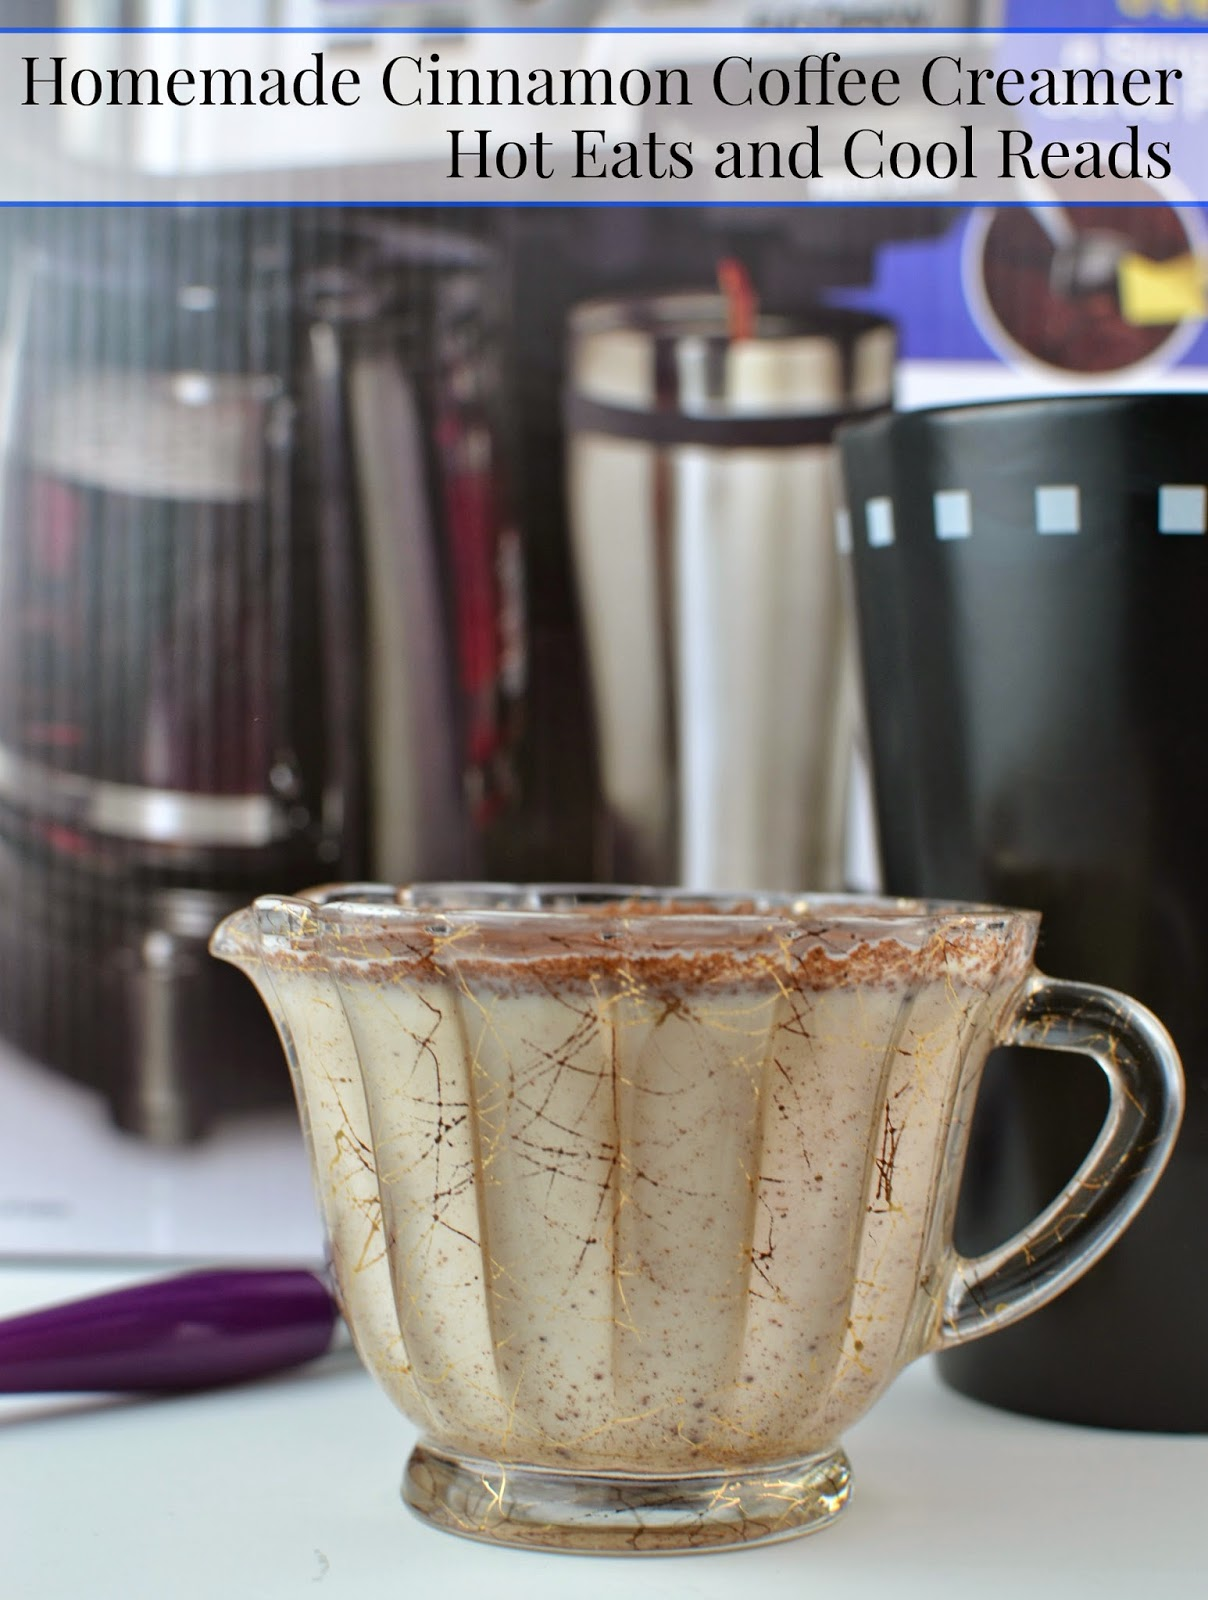 Hot Eats and Cool Reads: Homemade Cinnamon Coffee Creamer Recipe and Hamilton Beach FlexBrew 2-Way Coffee Maker plus Giveaway!